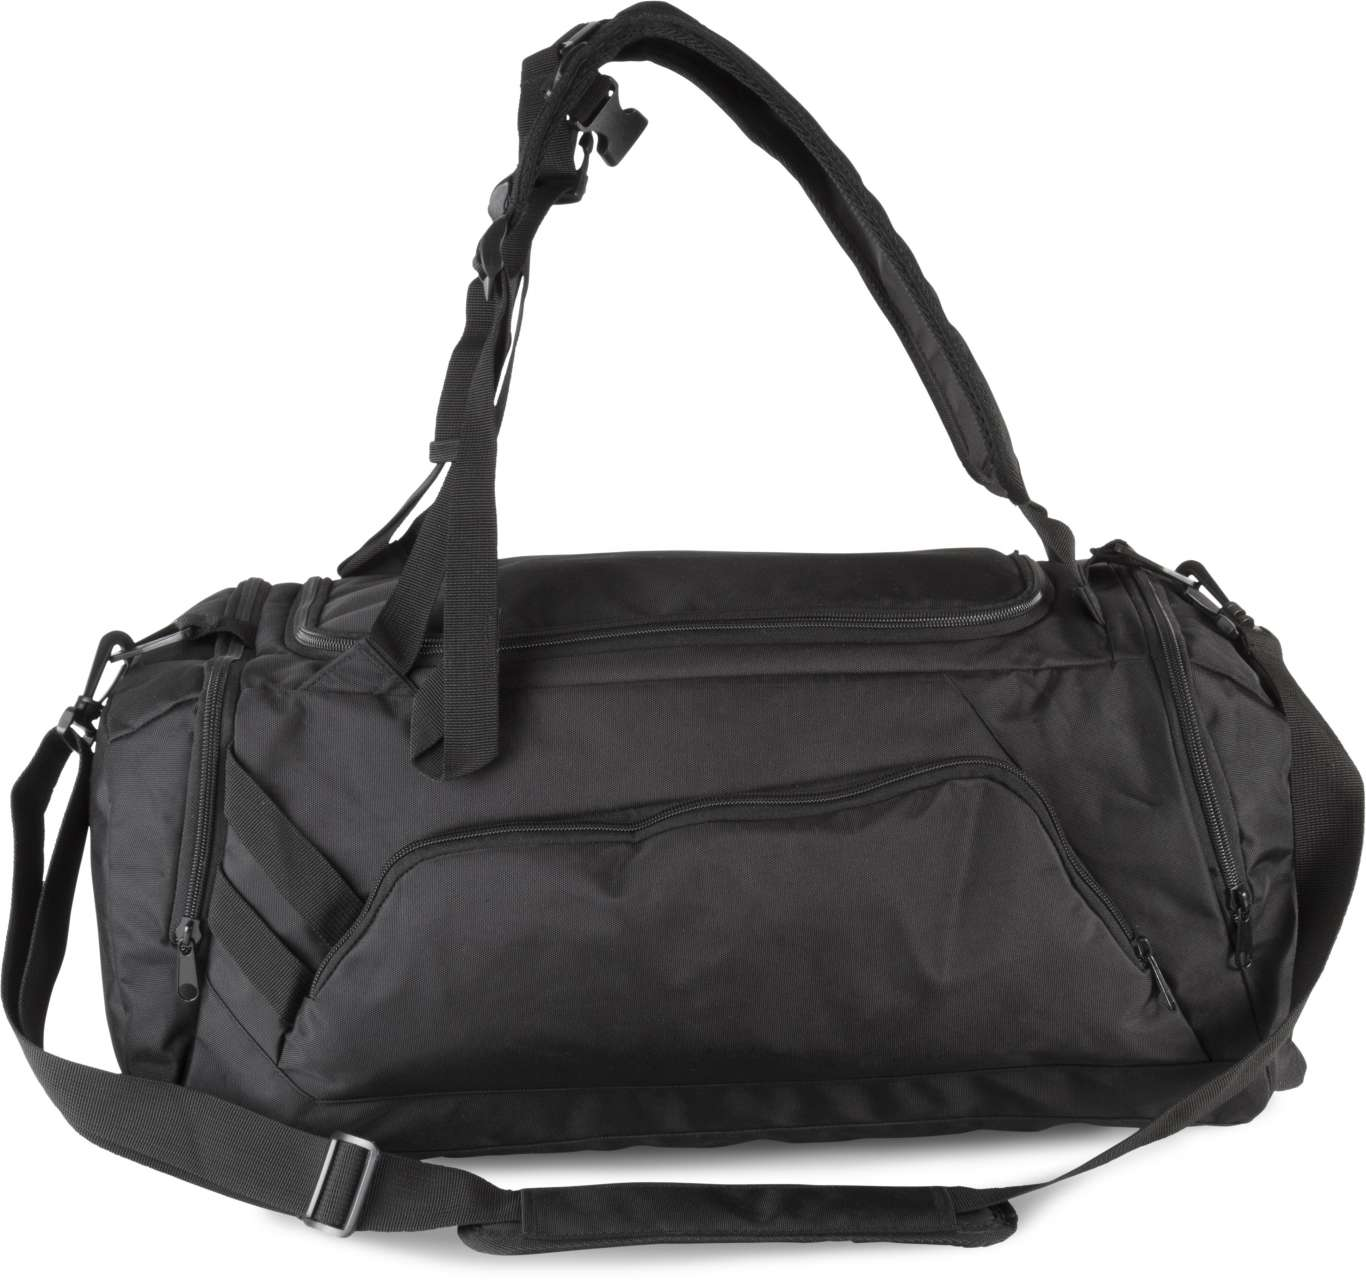 CONVERTIBLE GYM BAG/BACKPACK